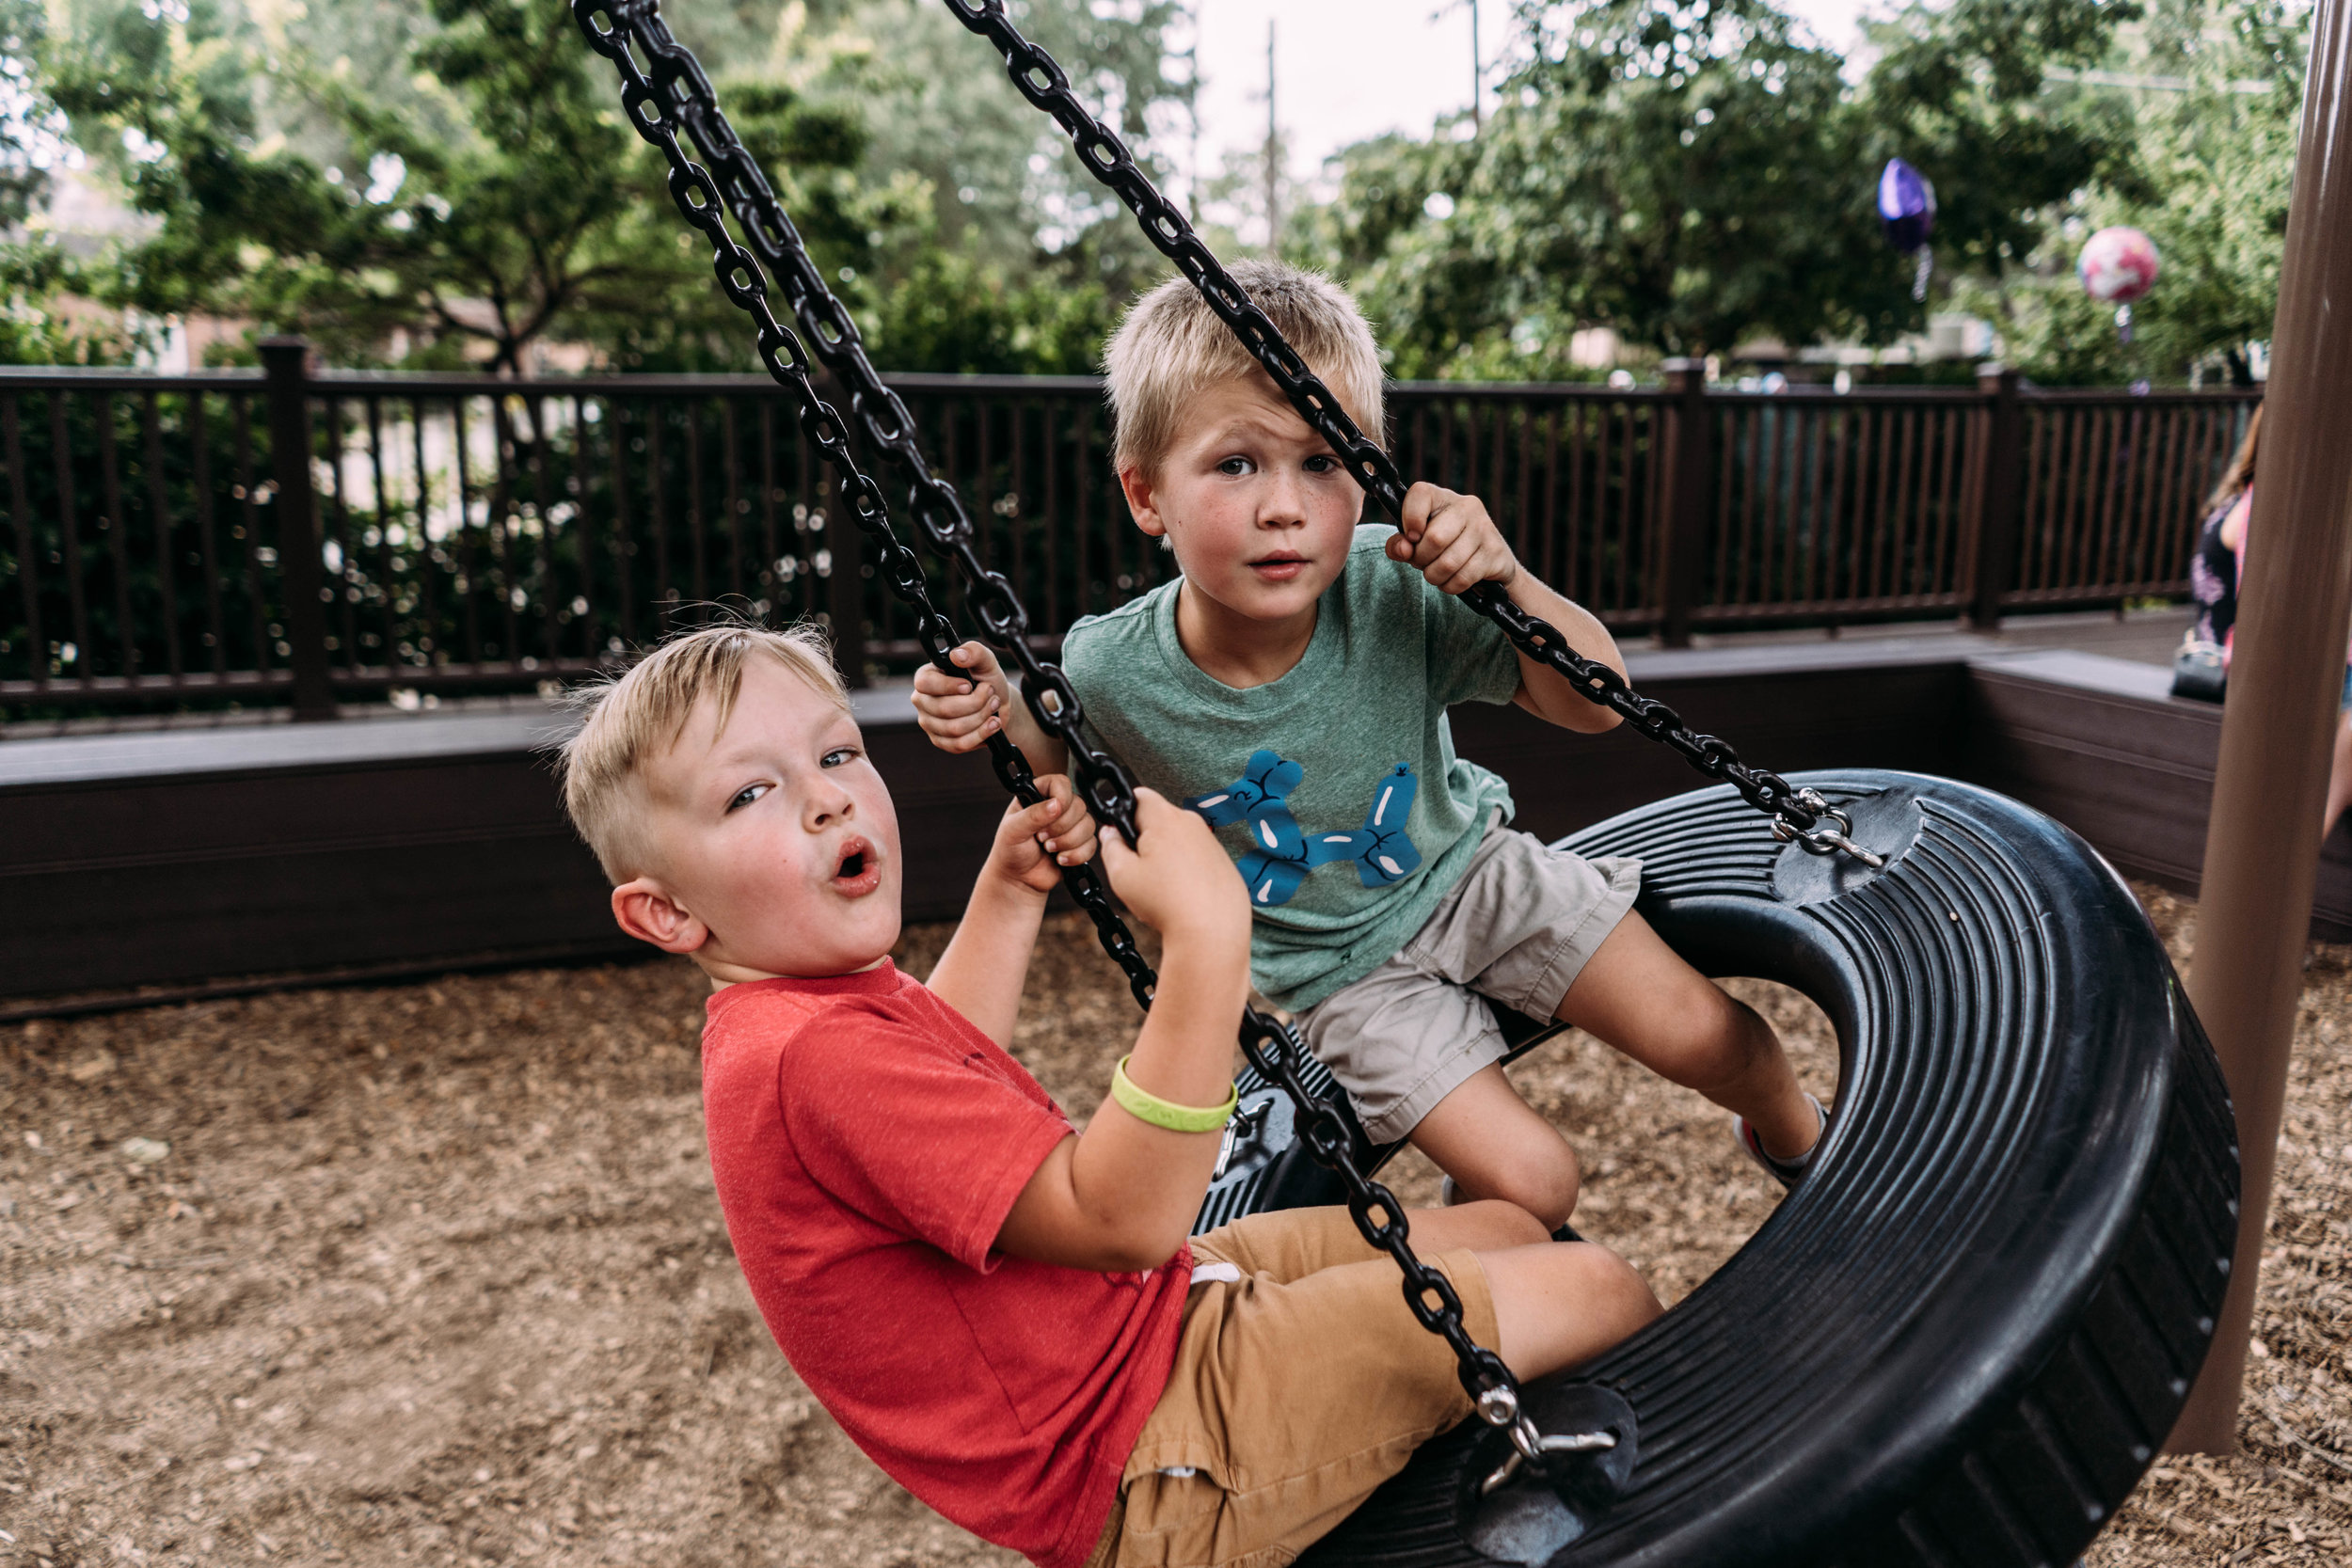 birthday party at the park-43.jpg